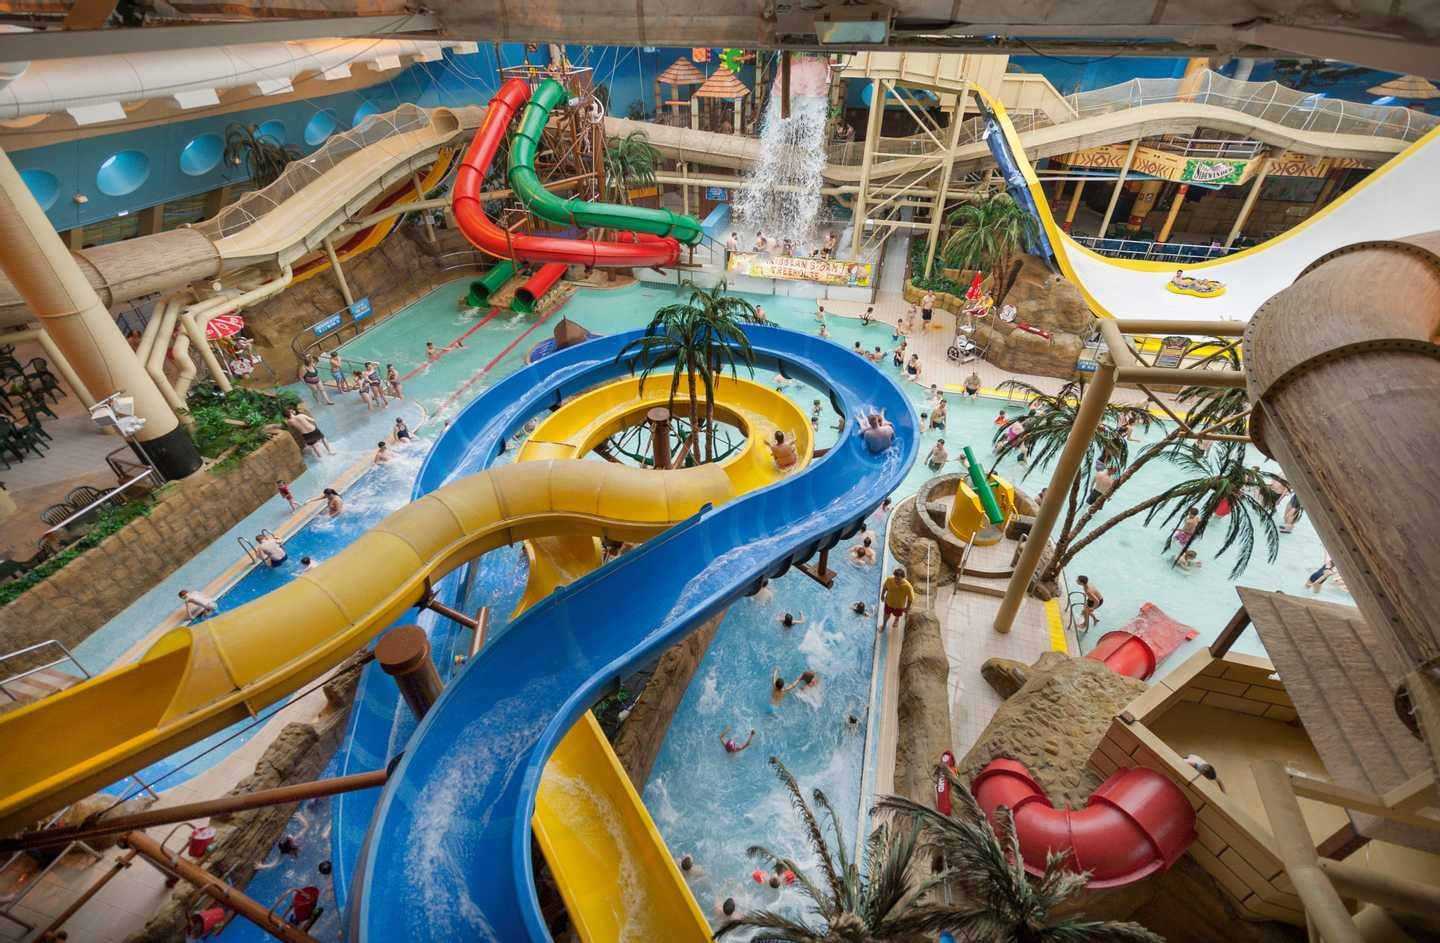 Waterslide in Sandcastle Waterpark